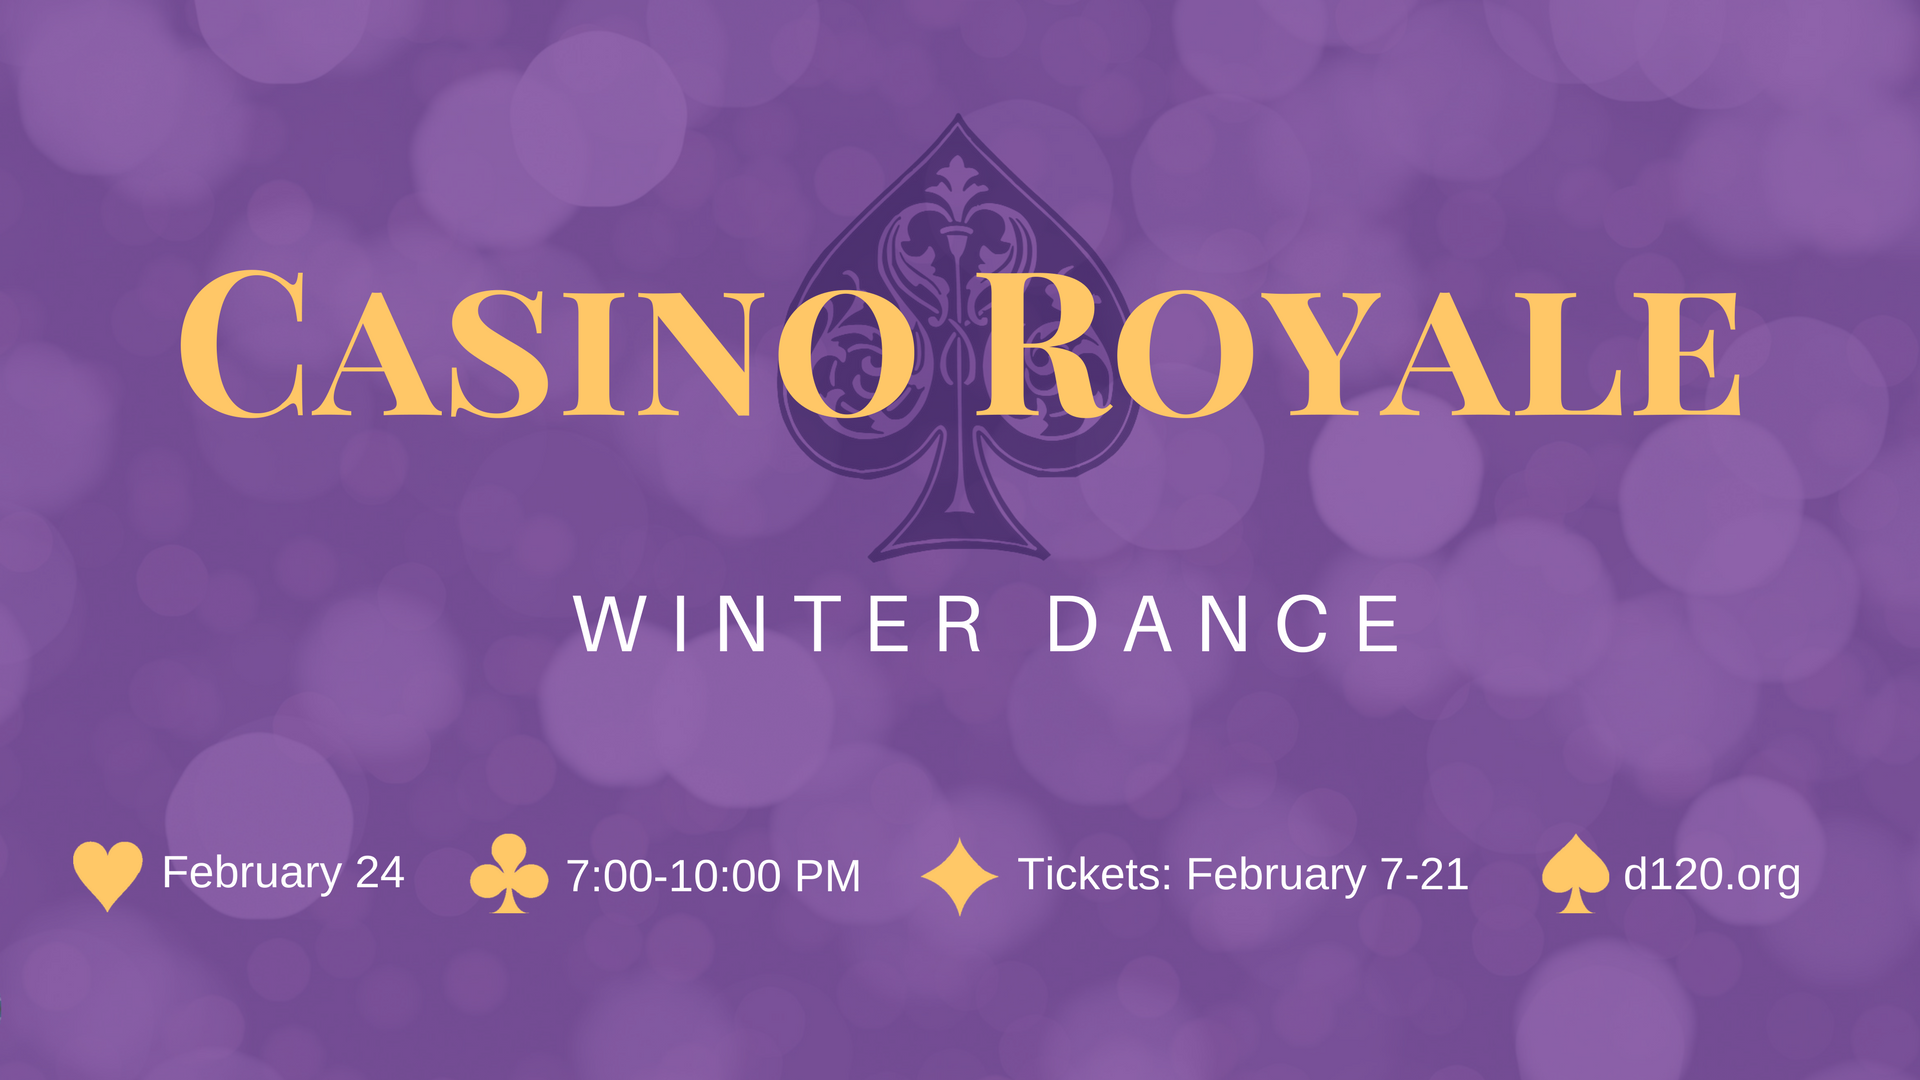 Casino Royale Winter Dance